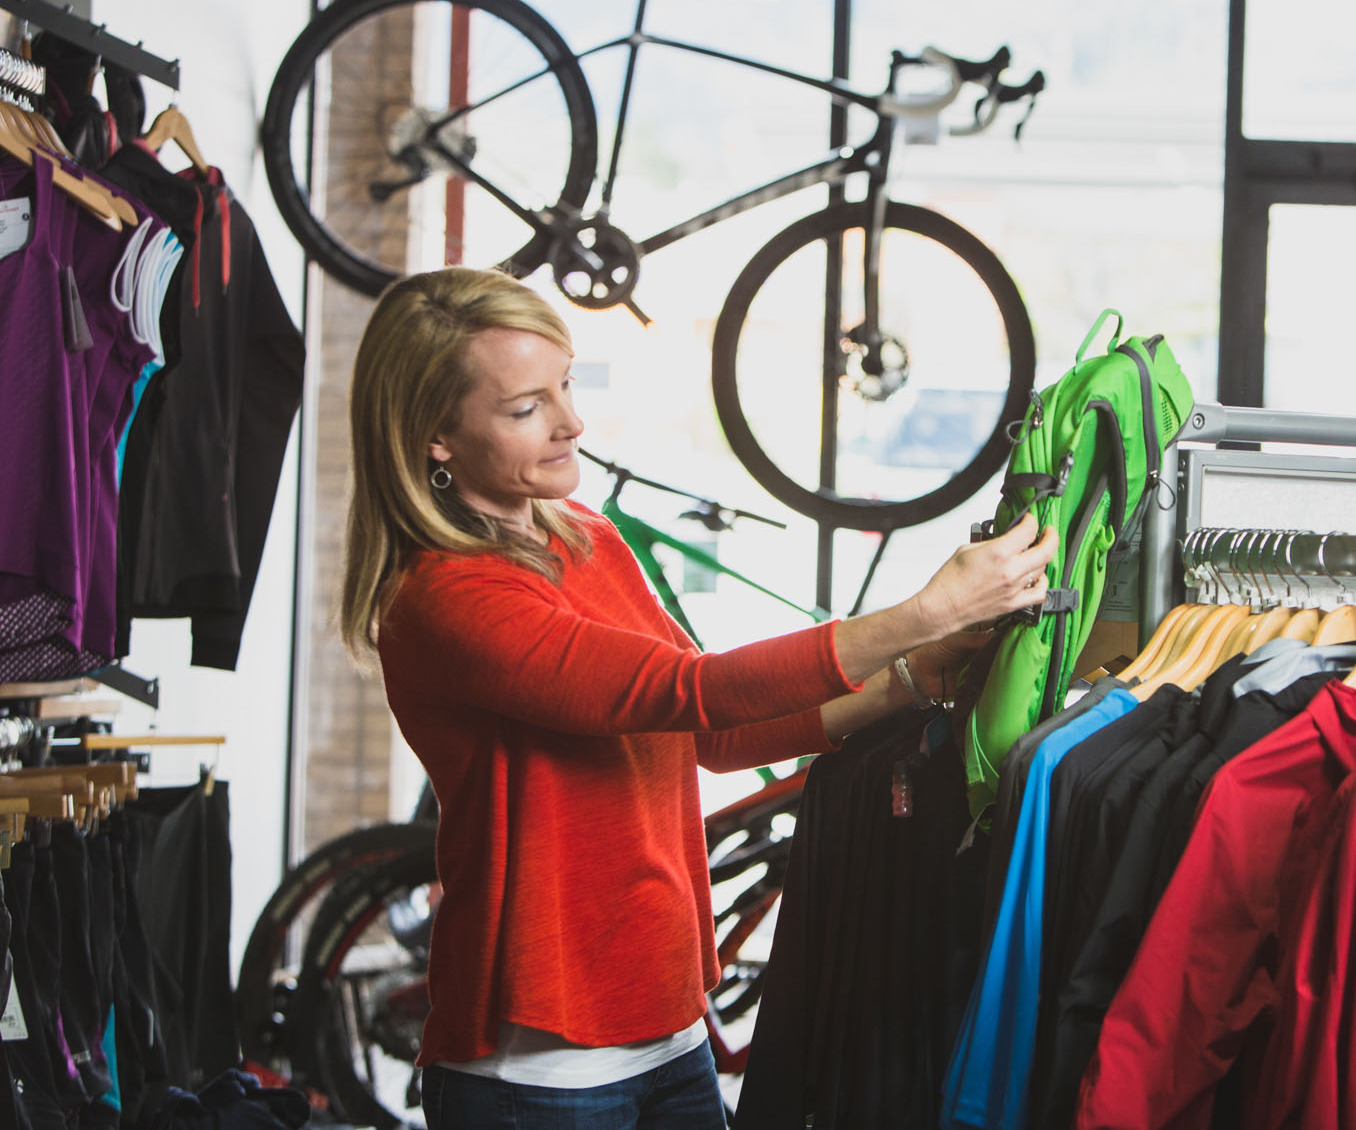 Woman shopping for cycling apparel